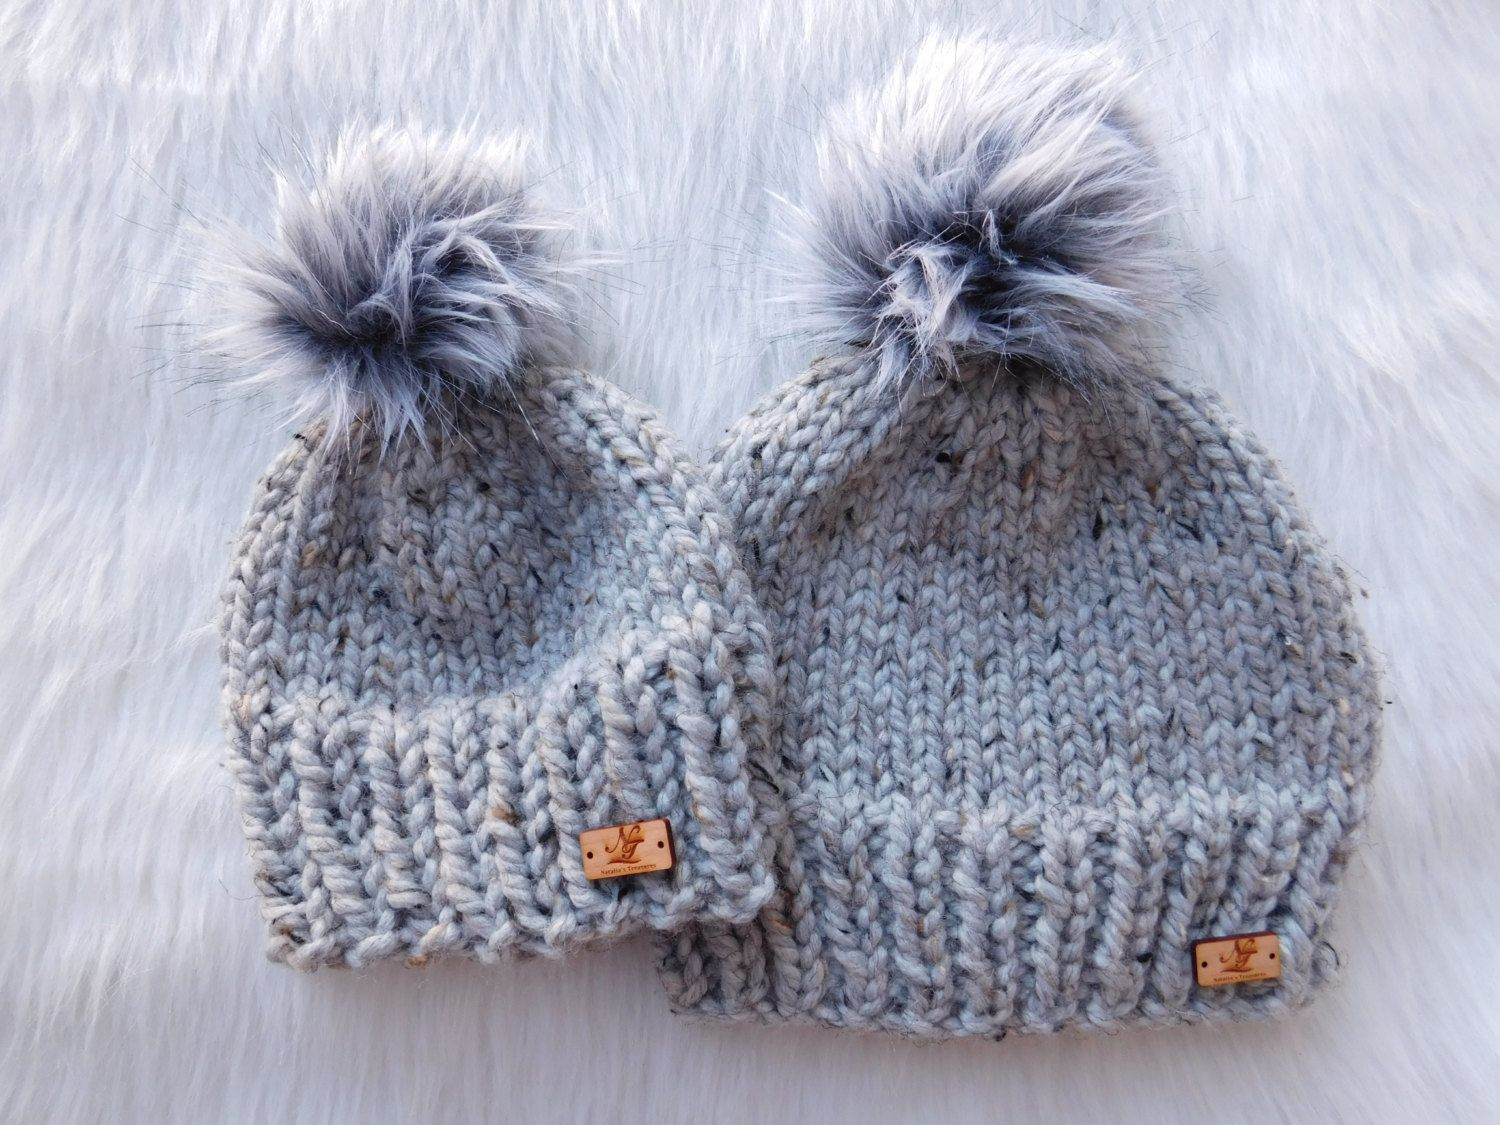 fea88b32374015 Matching hats.Mommy and Me hats. Mini me and Me hat. Mom/Son hats.Mom  daughter hats. Solid color with pom pom hats. by NataliaTreasures on Etsy